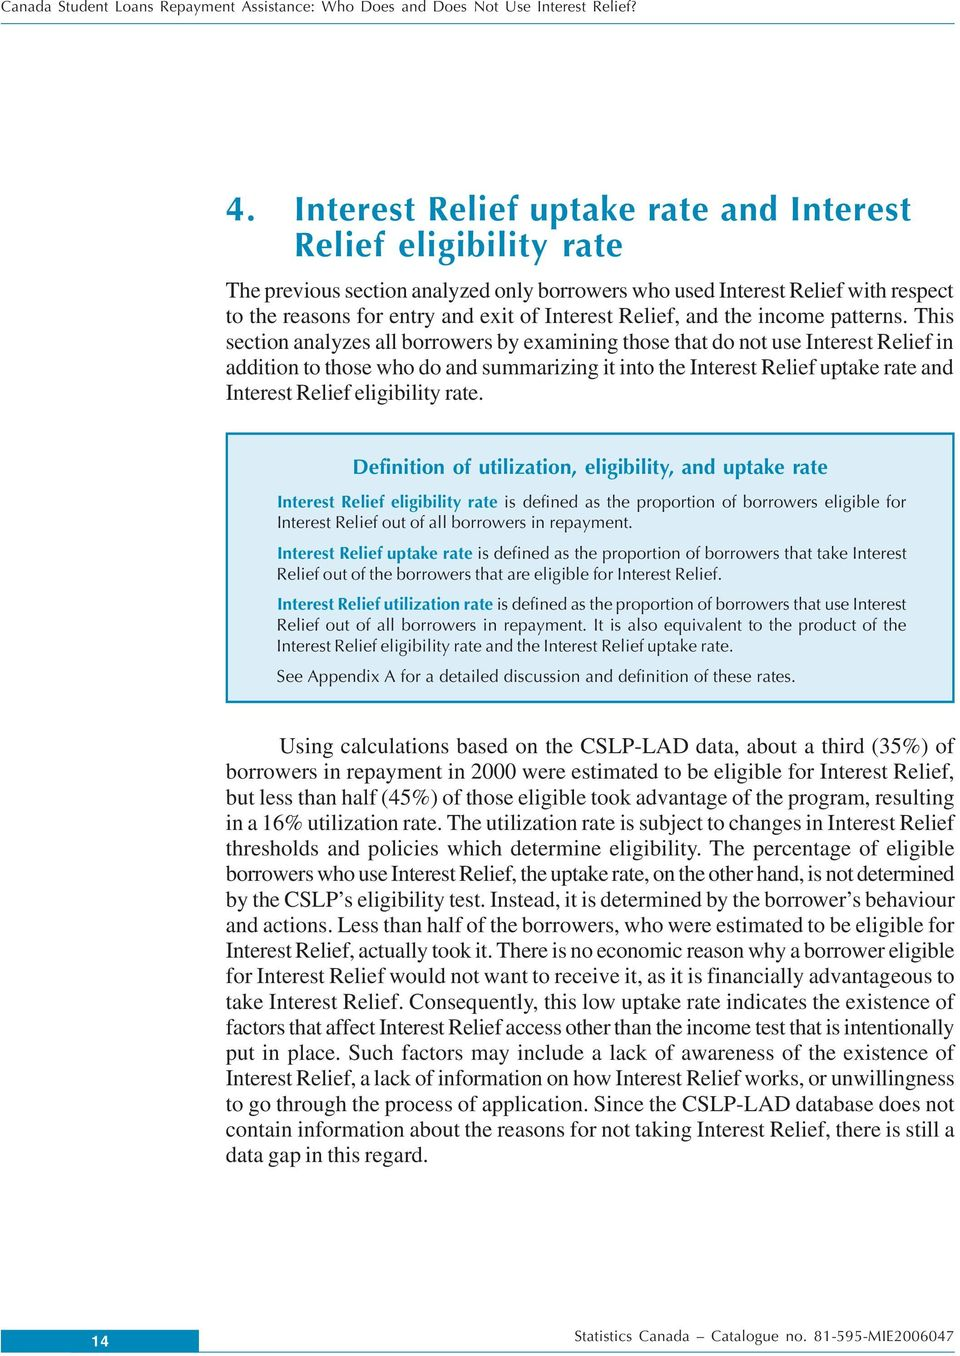 This section analyzes all borrowers by examining those that do not use Interest Relief in addition to those who do and summarizing it into the Interest Relief uptake rate and Interest Relief